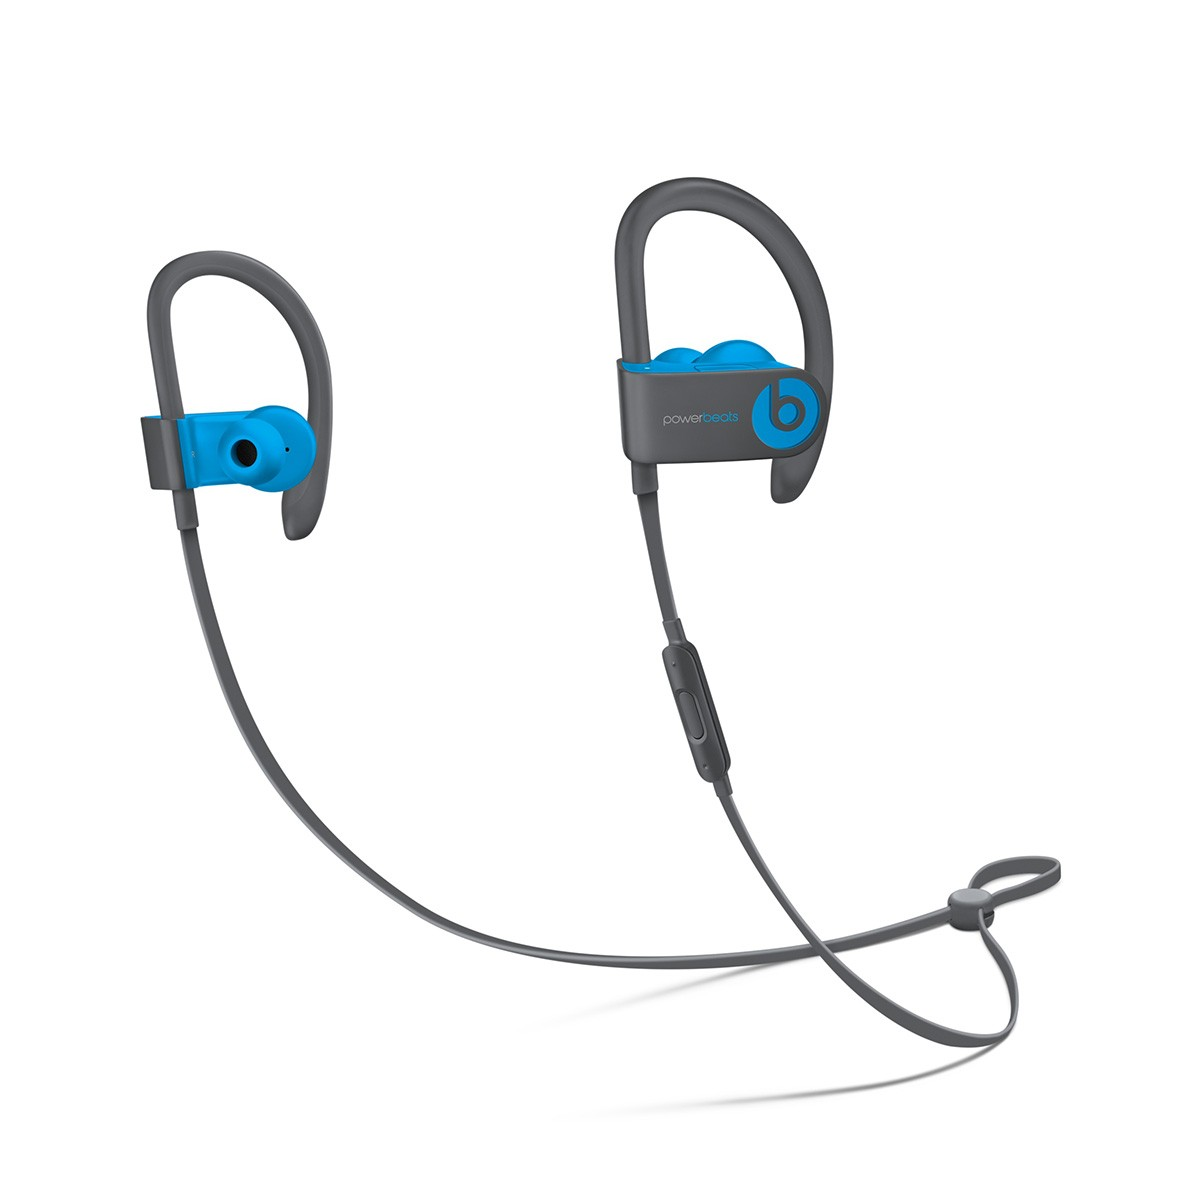 Sluchátka Powerbeats3 Wireless - modrá